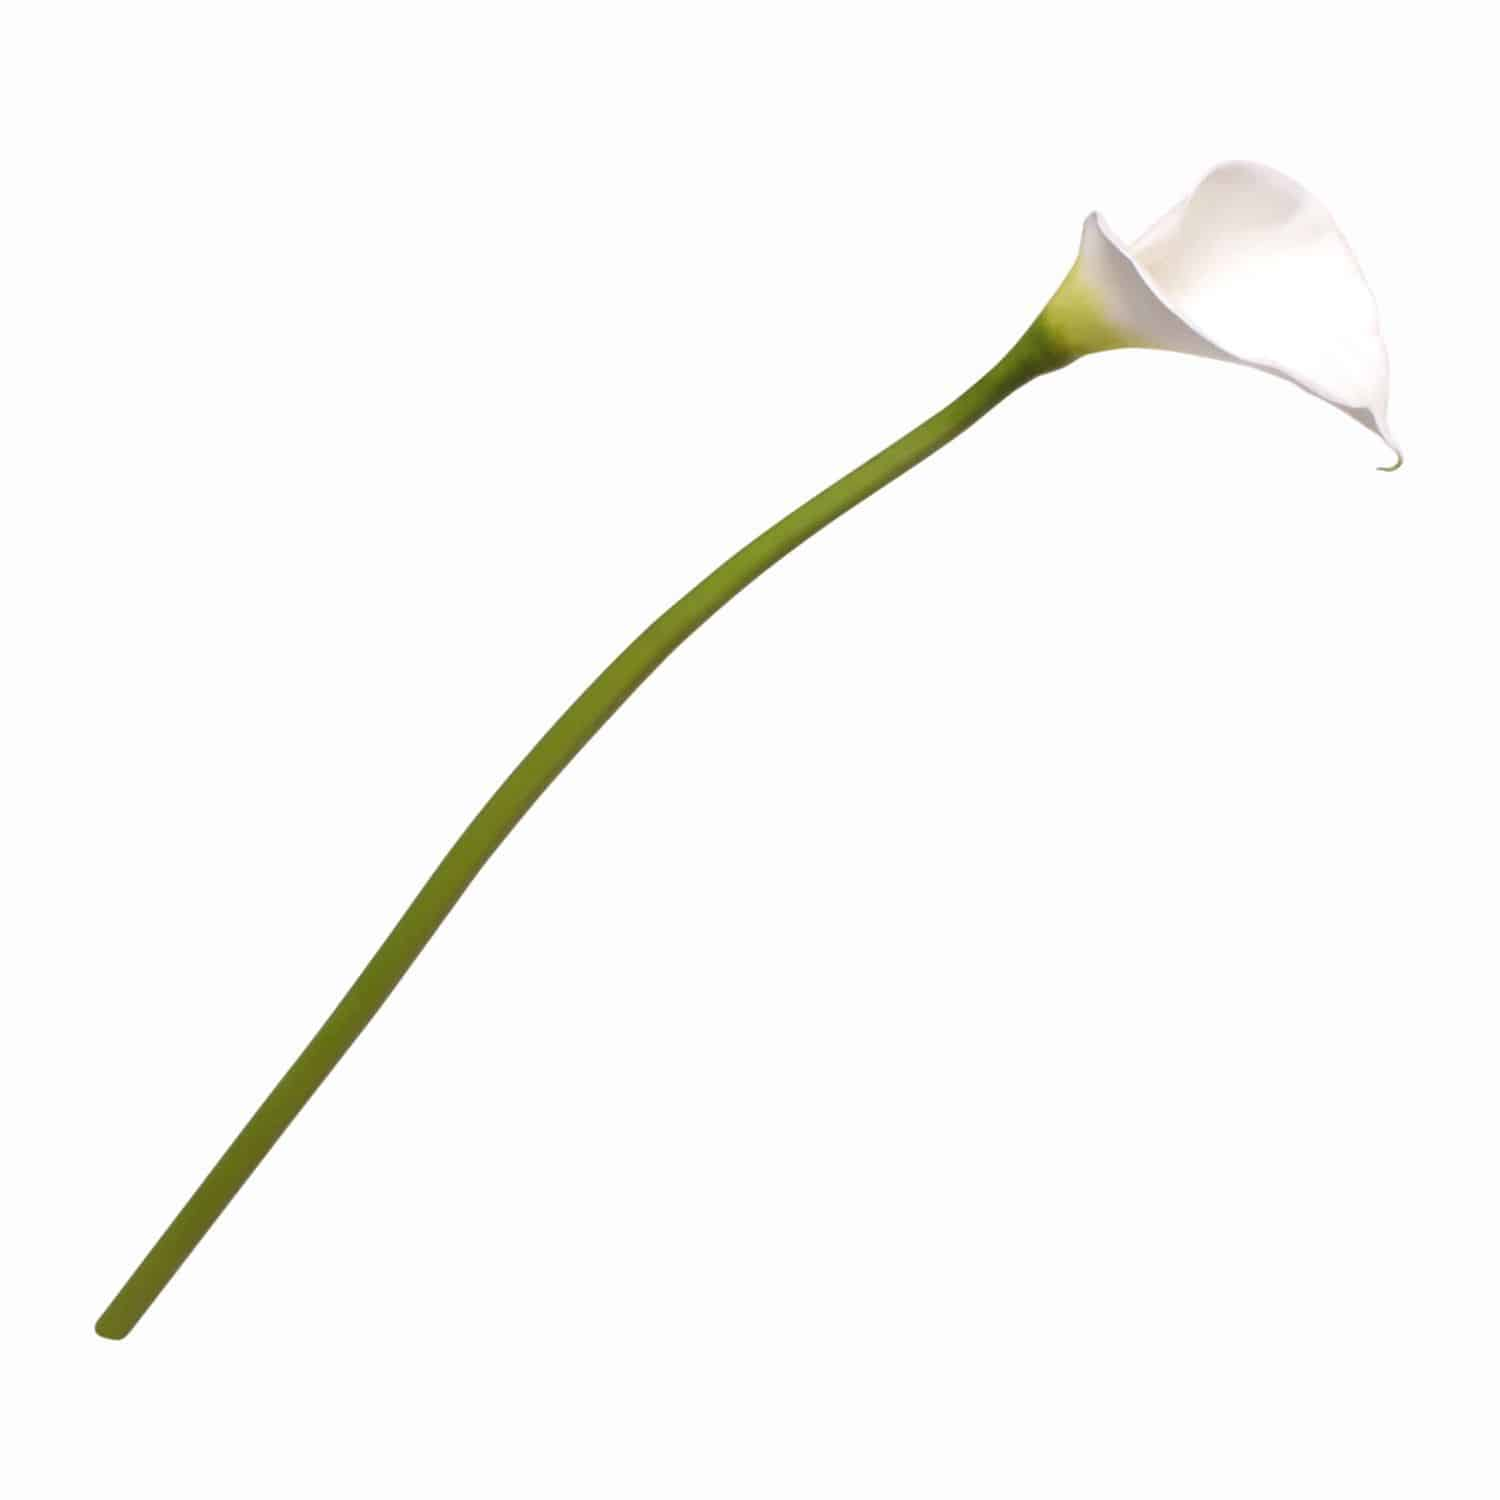 Shop for our best silk flowers. This calla lily is a true match for the fresh flower. Green stem blends into pure white head. Excellent for your modern arrangements.